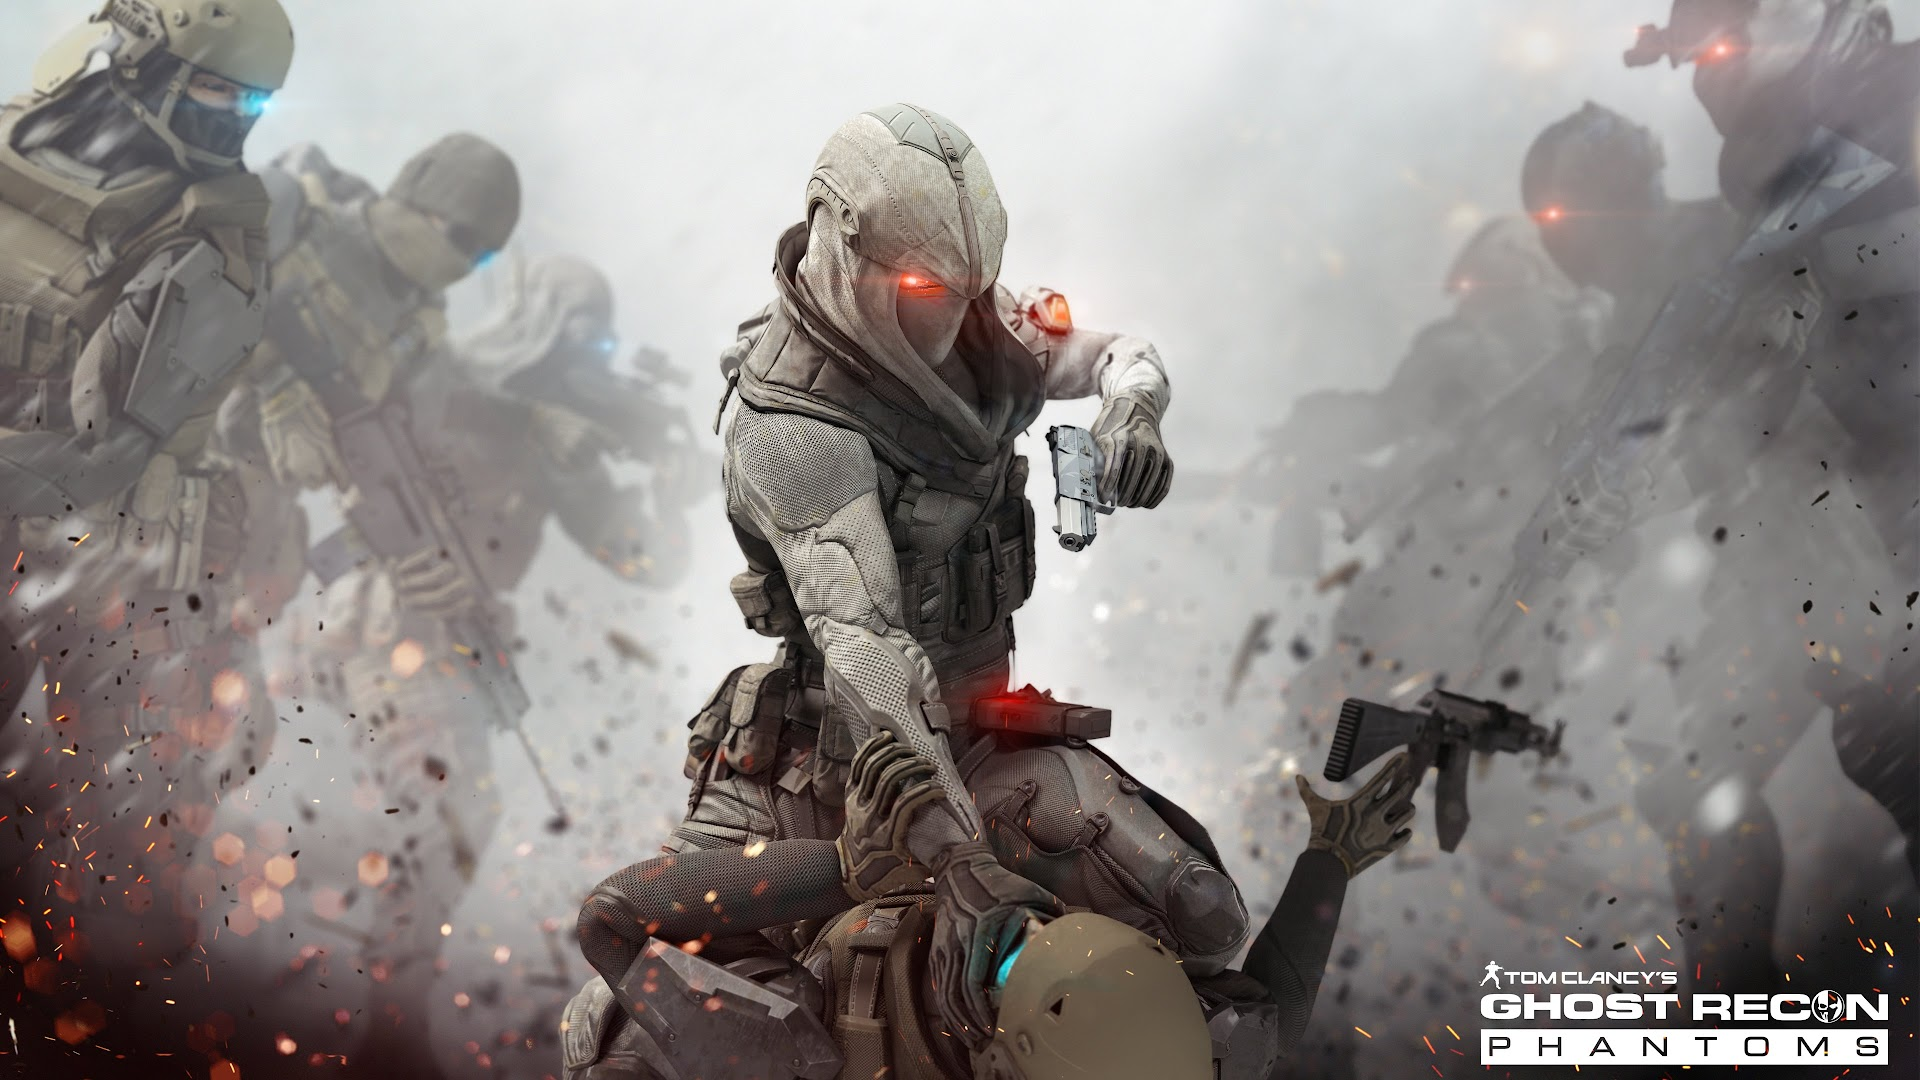 Hd wallpaper 3 tom clancy s endwar online - Tom Clancy S Ghost Recon Phantoms In The 3rd 4k Wallpaper Optimized For Apply In Any Tablet And Desktop Background